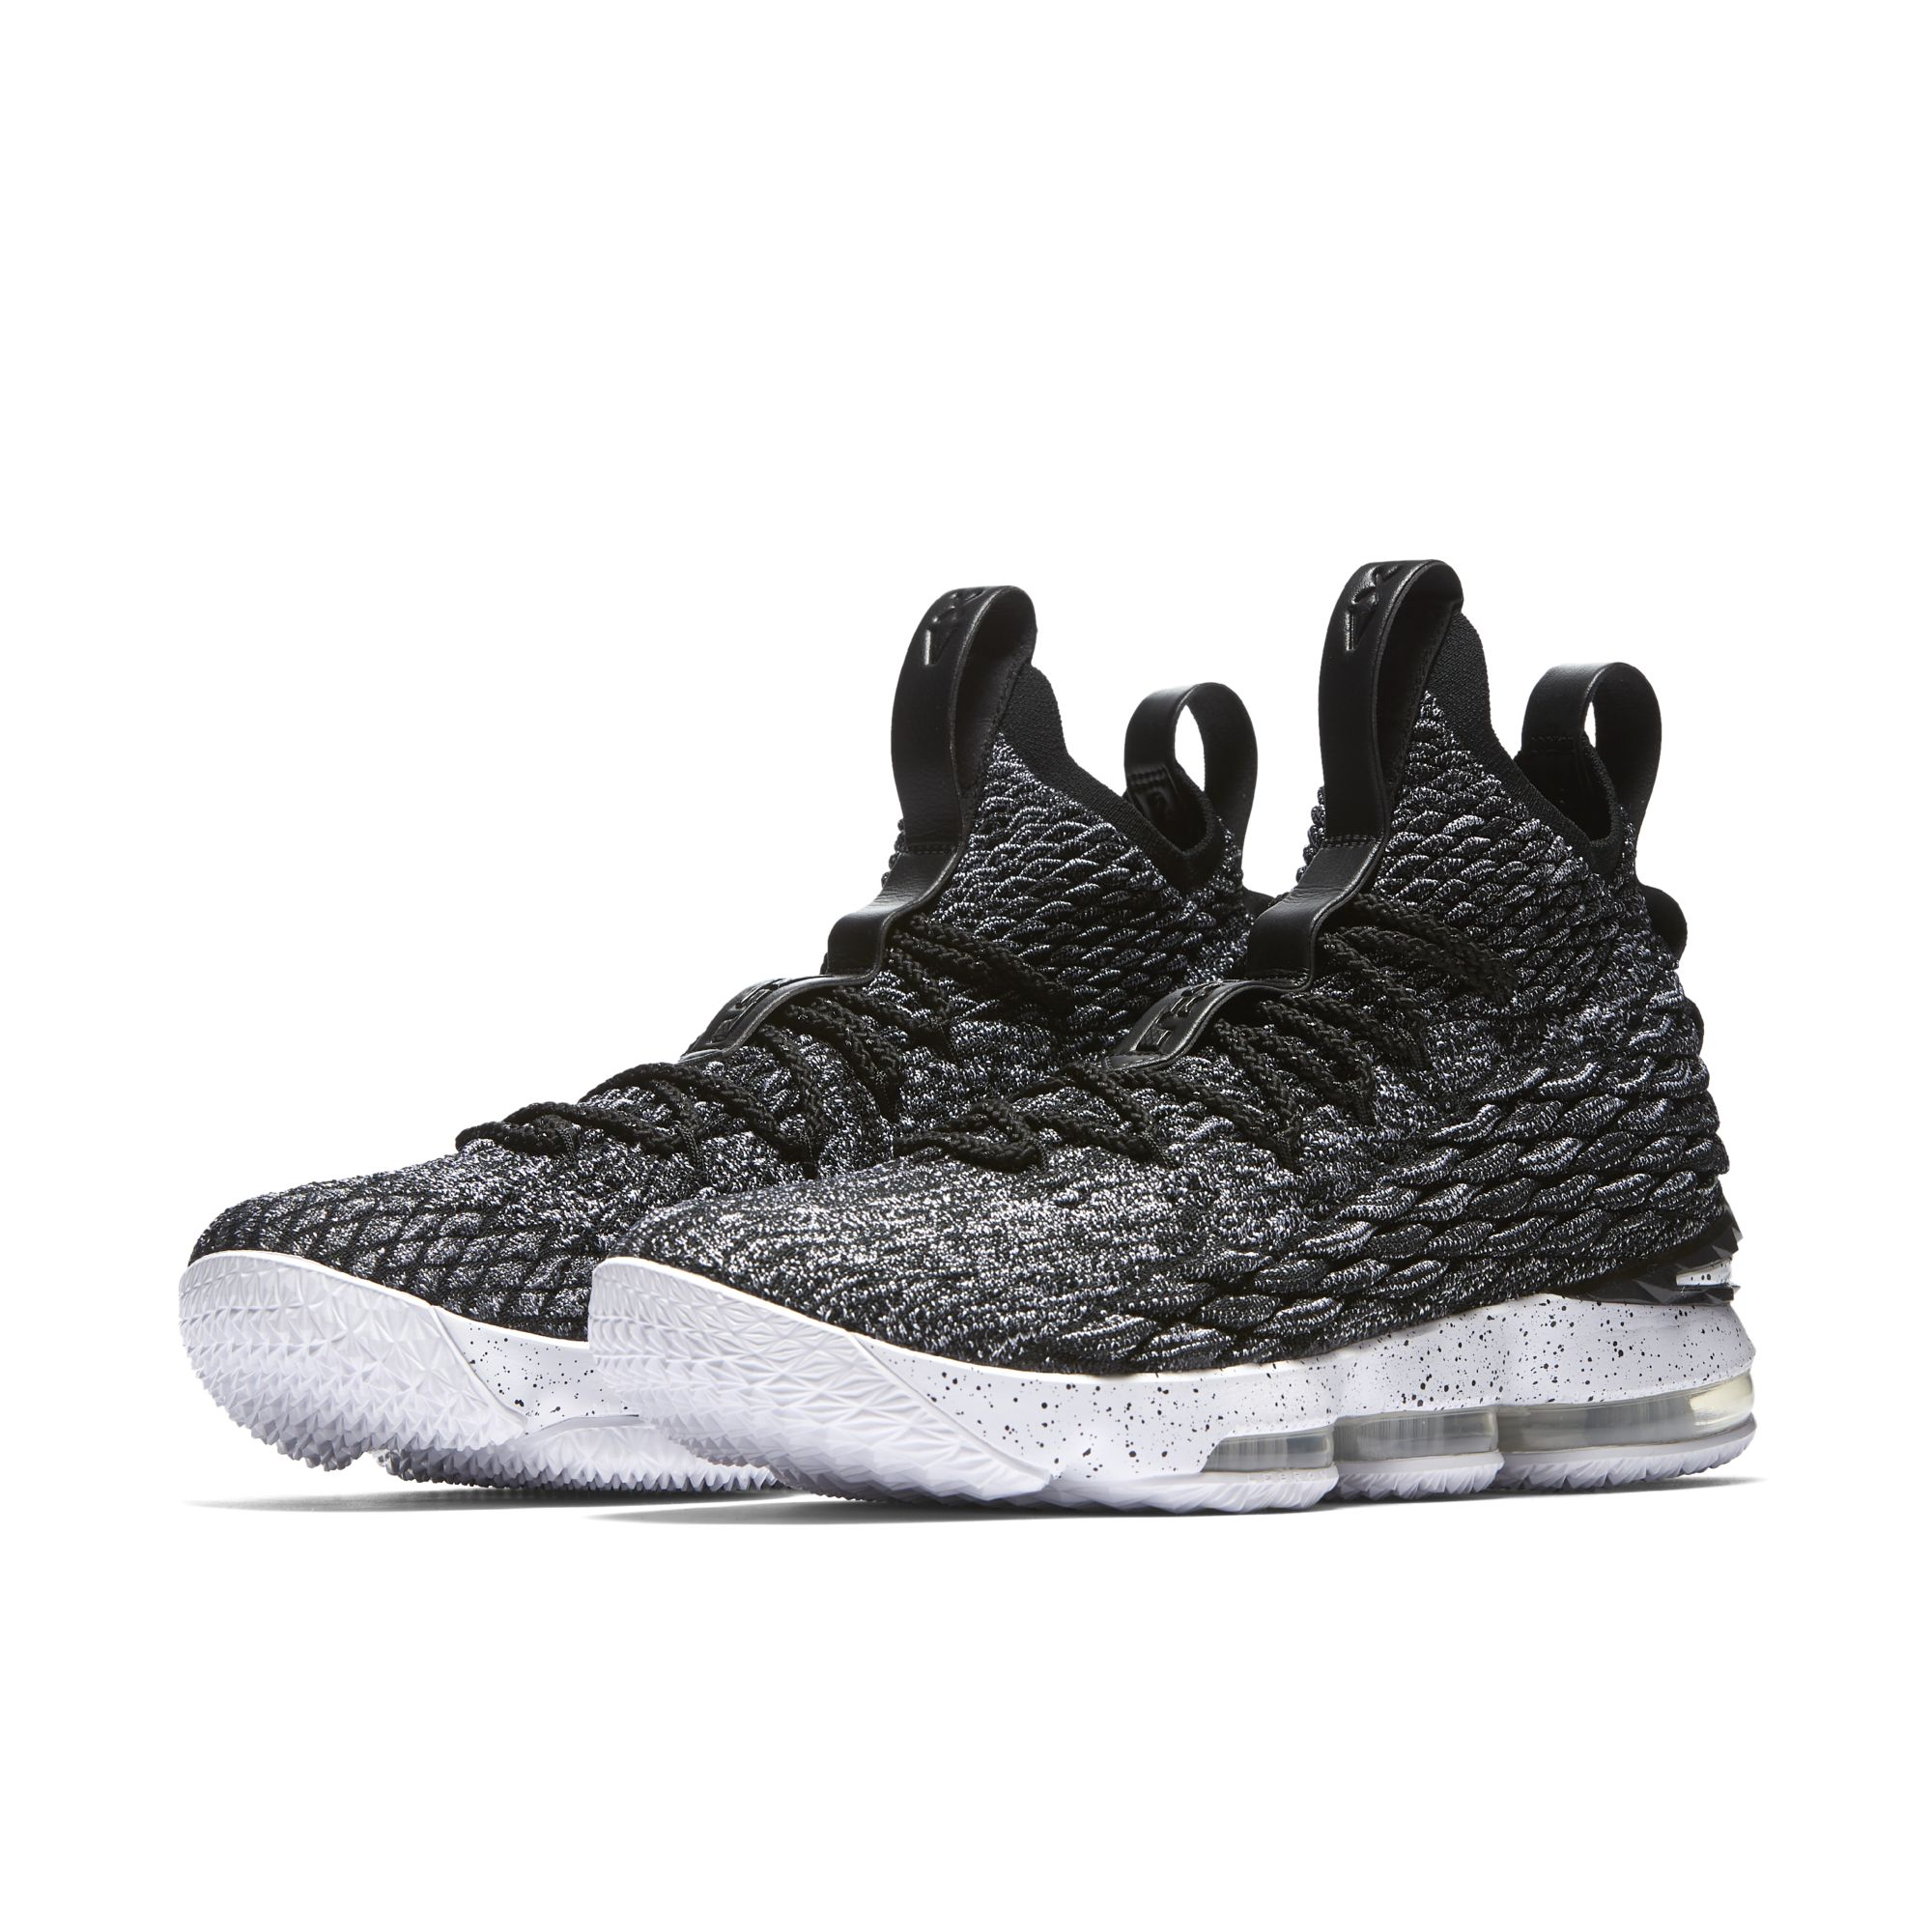 10a4102da0f4 Official Images of the Nike LeBron 15  Ashes  - WearTesters